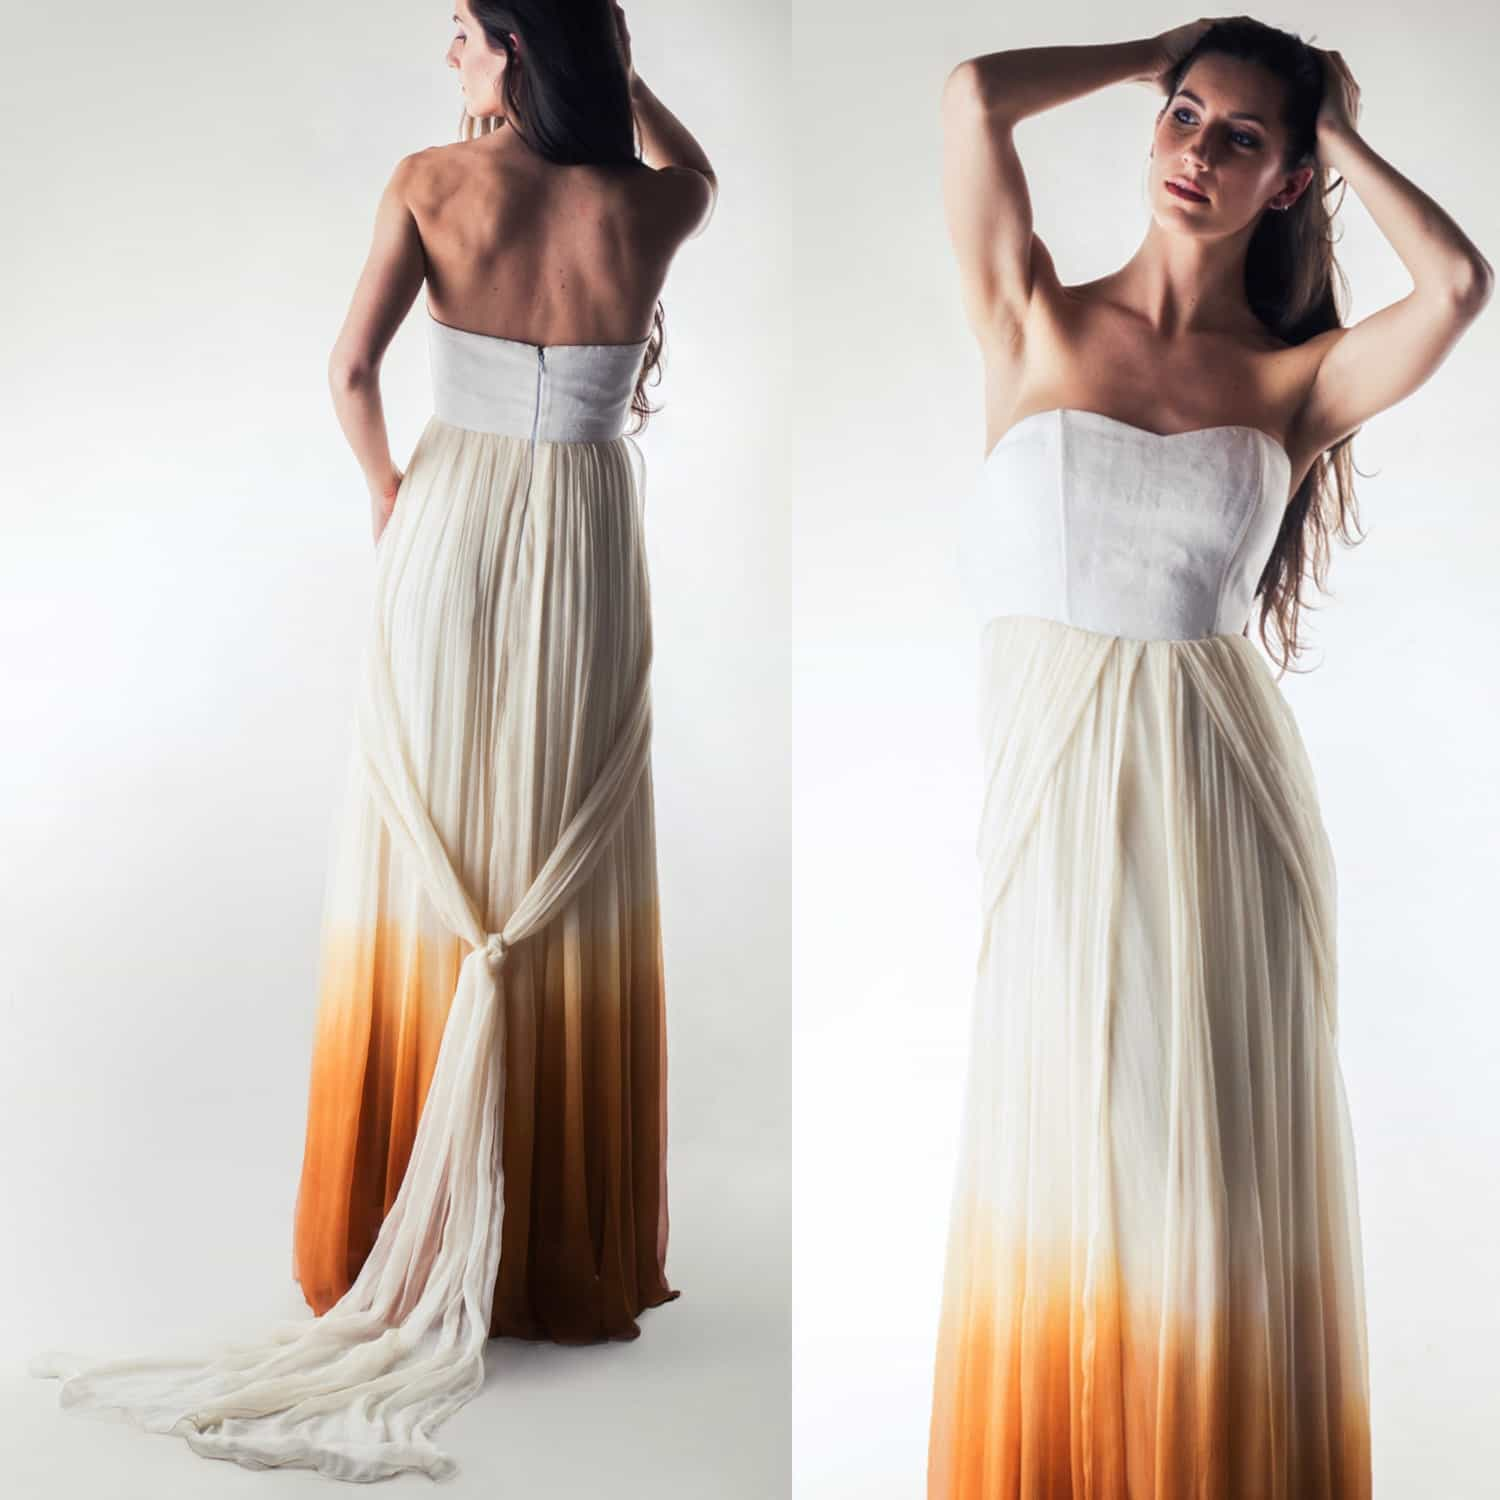 Helianthus ~ Ombré wedding dress - Larimeloom